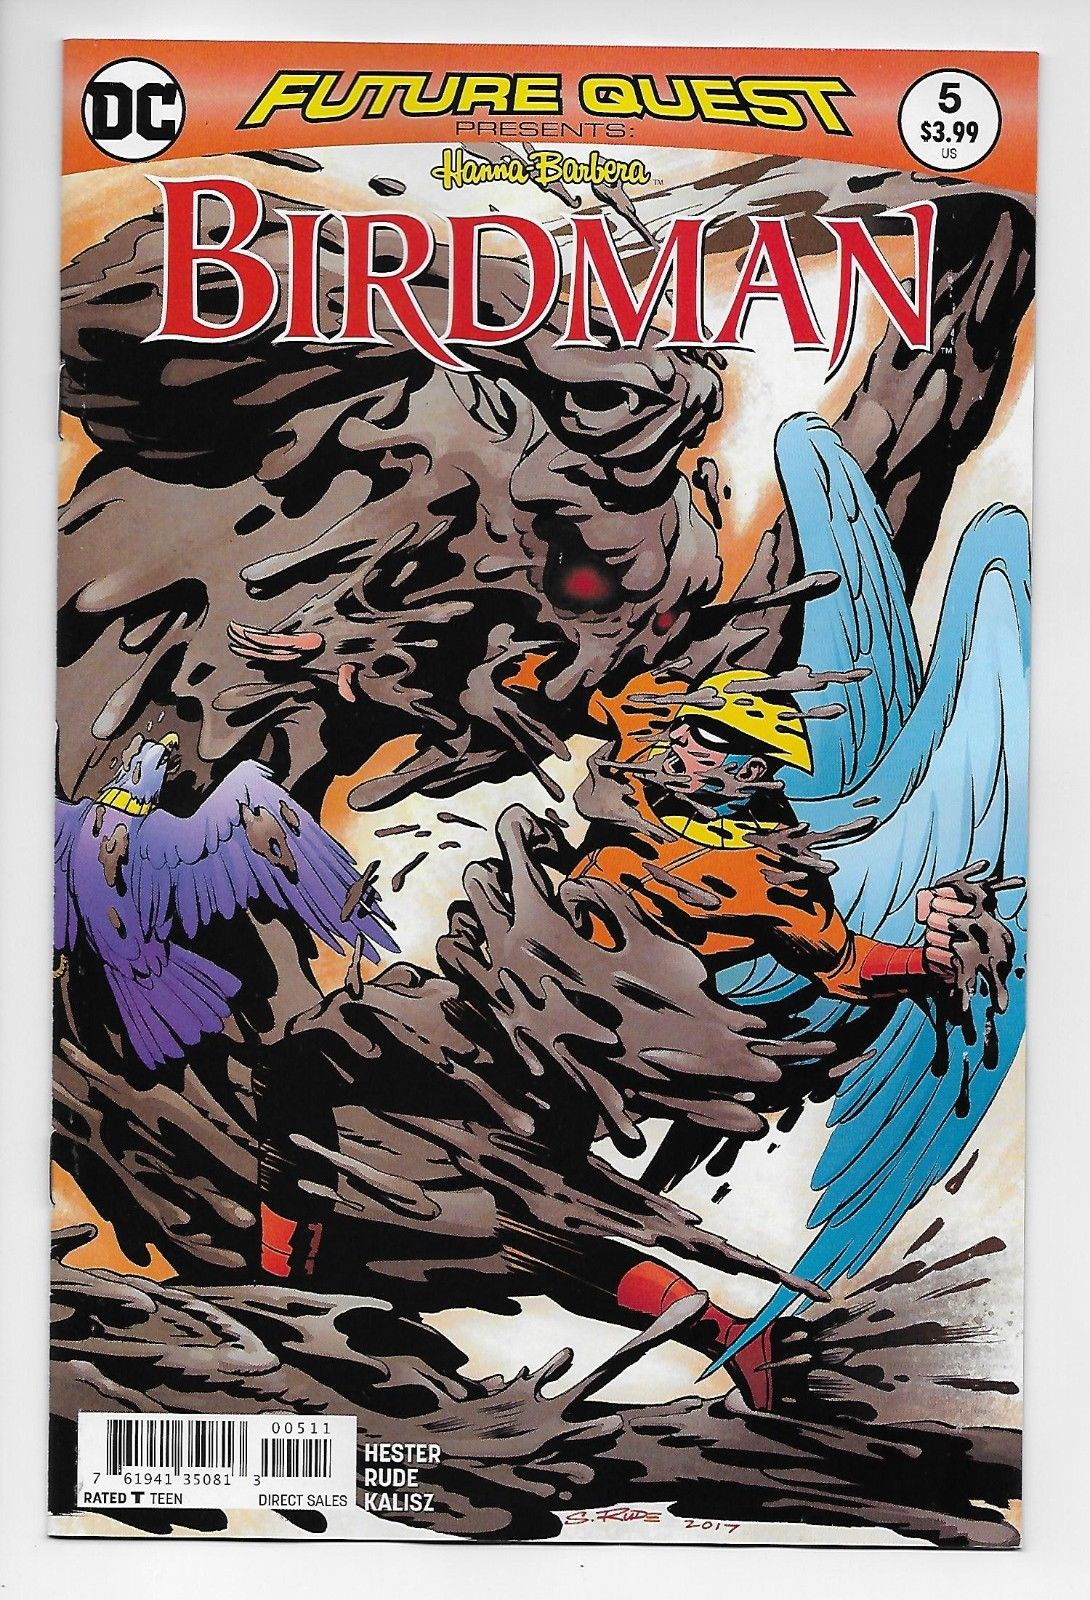 Future Quest Steve Rude Birdman Collected Set